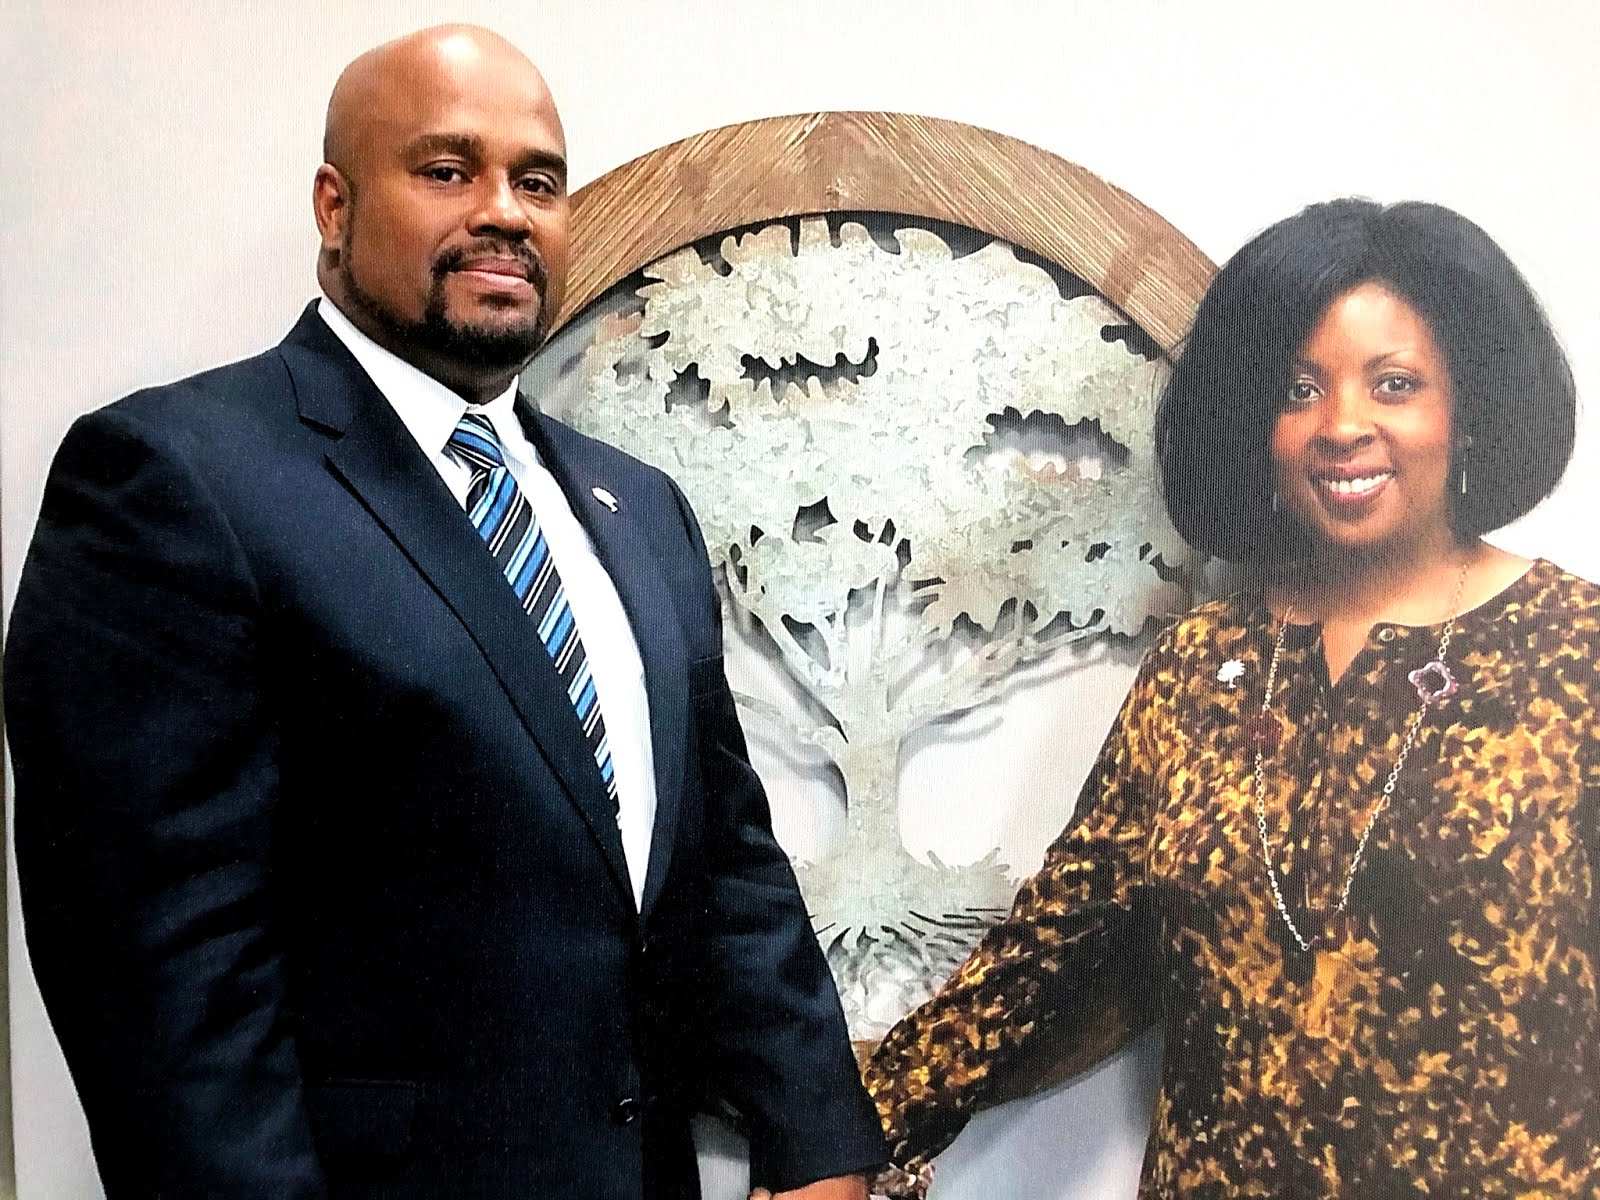 Bishop Shawn and First Lady Tasha Davis